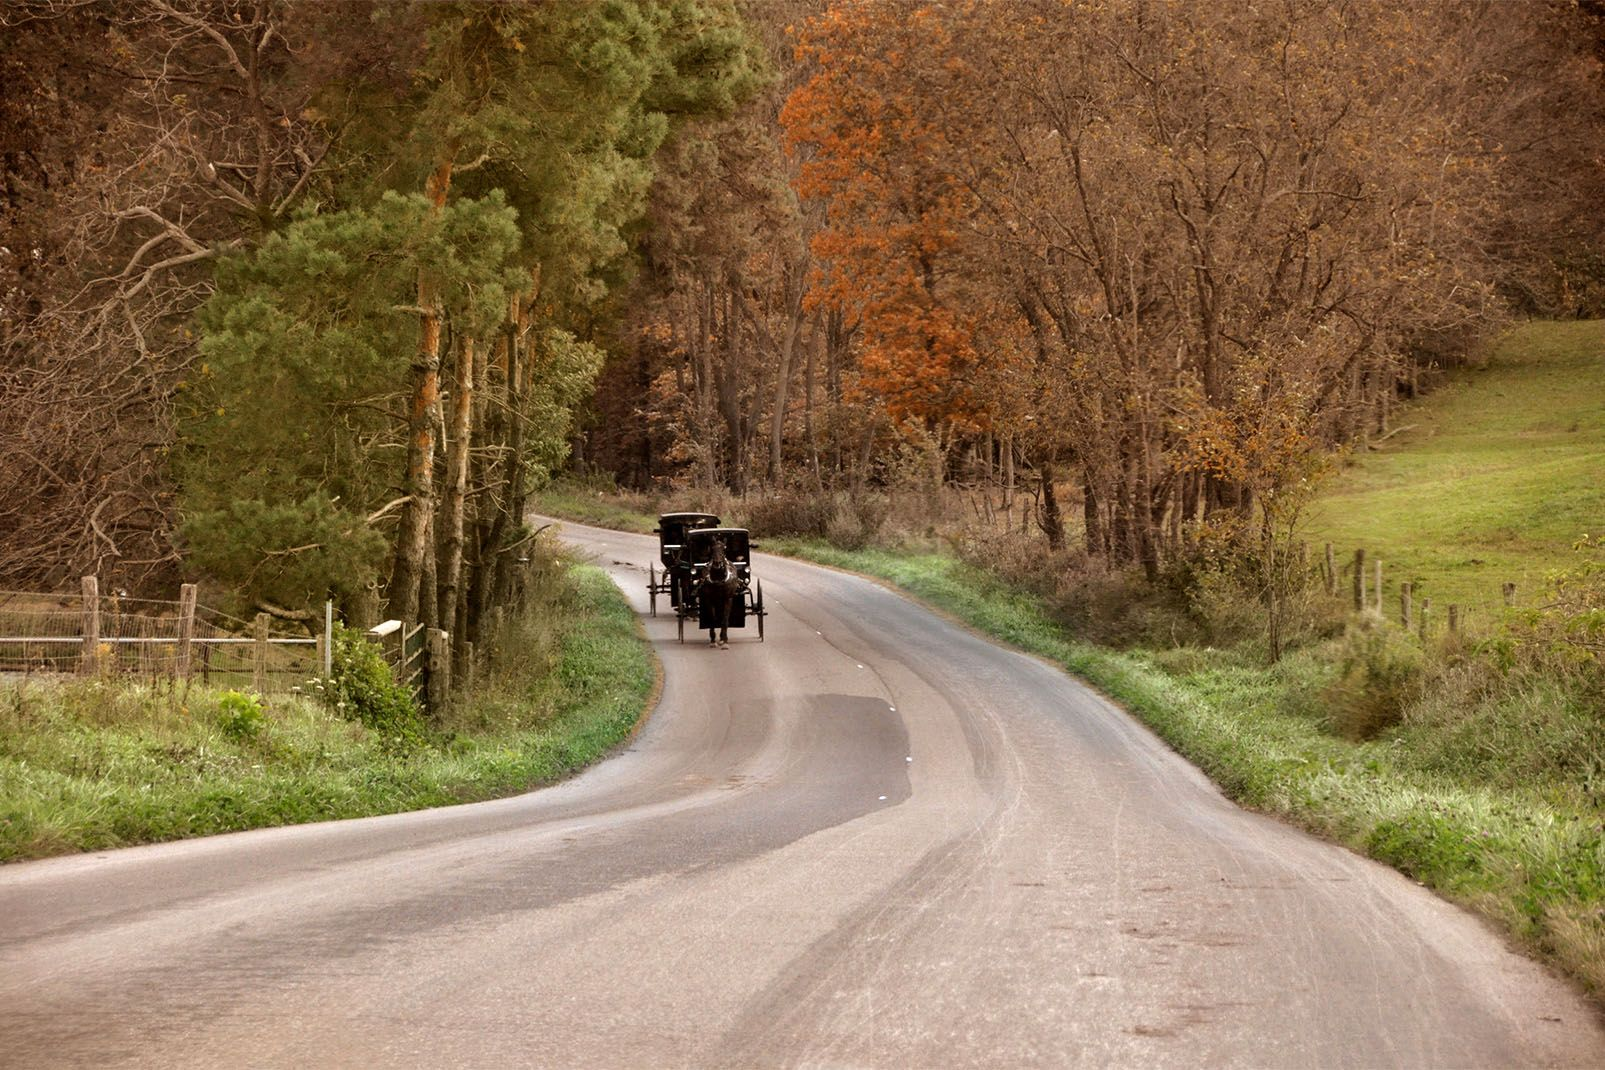 Travel To Midwestern USA Discover Midwestern USA With Easyvoyage - Us map of dirt roads from west coast to midwest